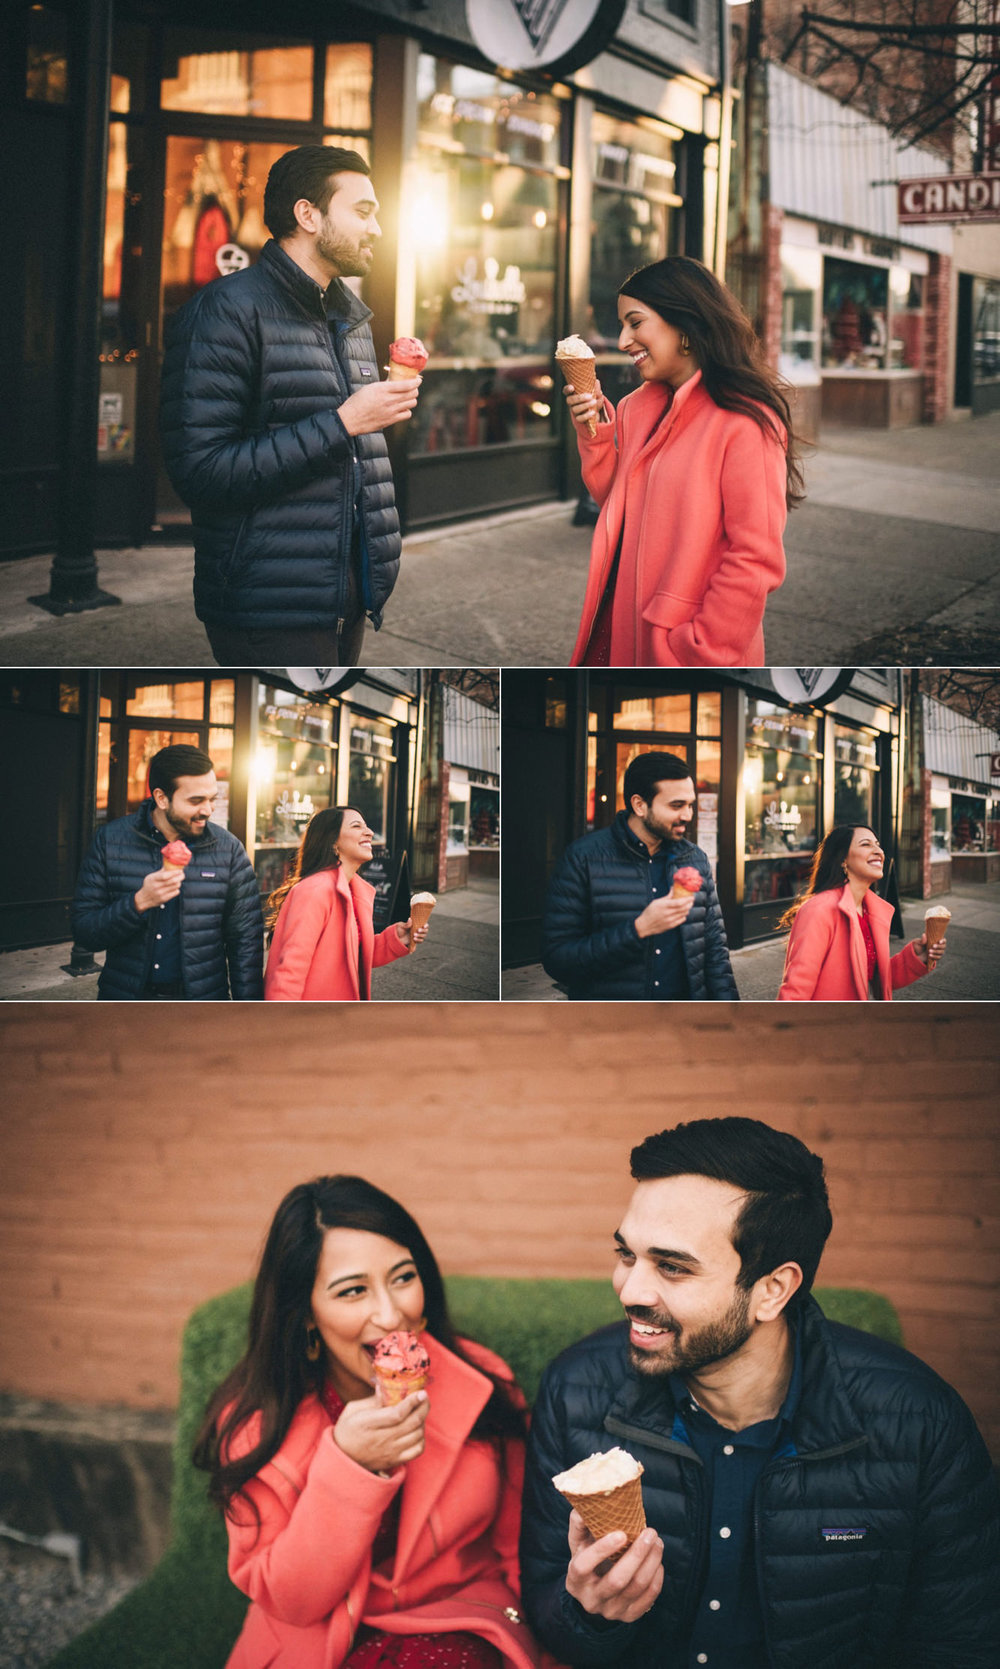 Nulu-Winter-Engagement-Session-By-Kentucky-Wedding-Photographer-Sarah-Katherine-Davis-Photography-10.jpg